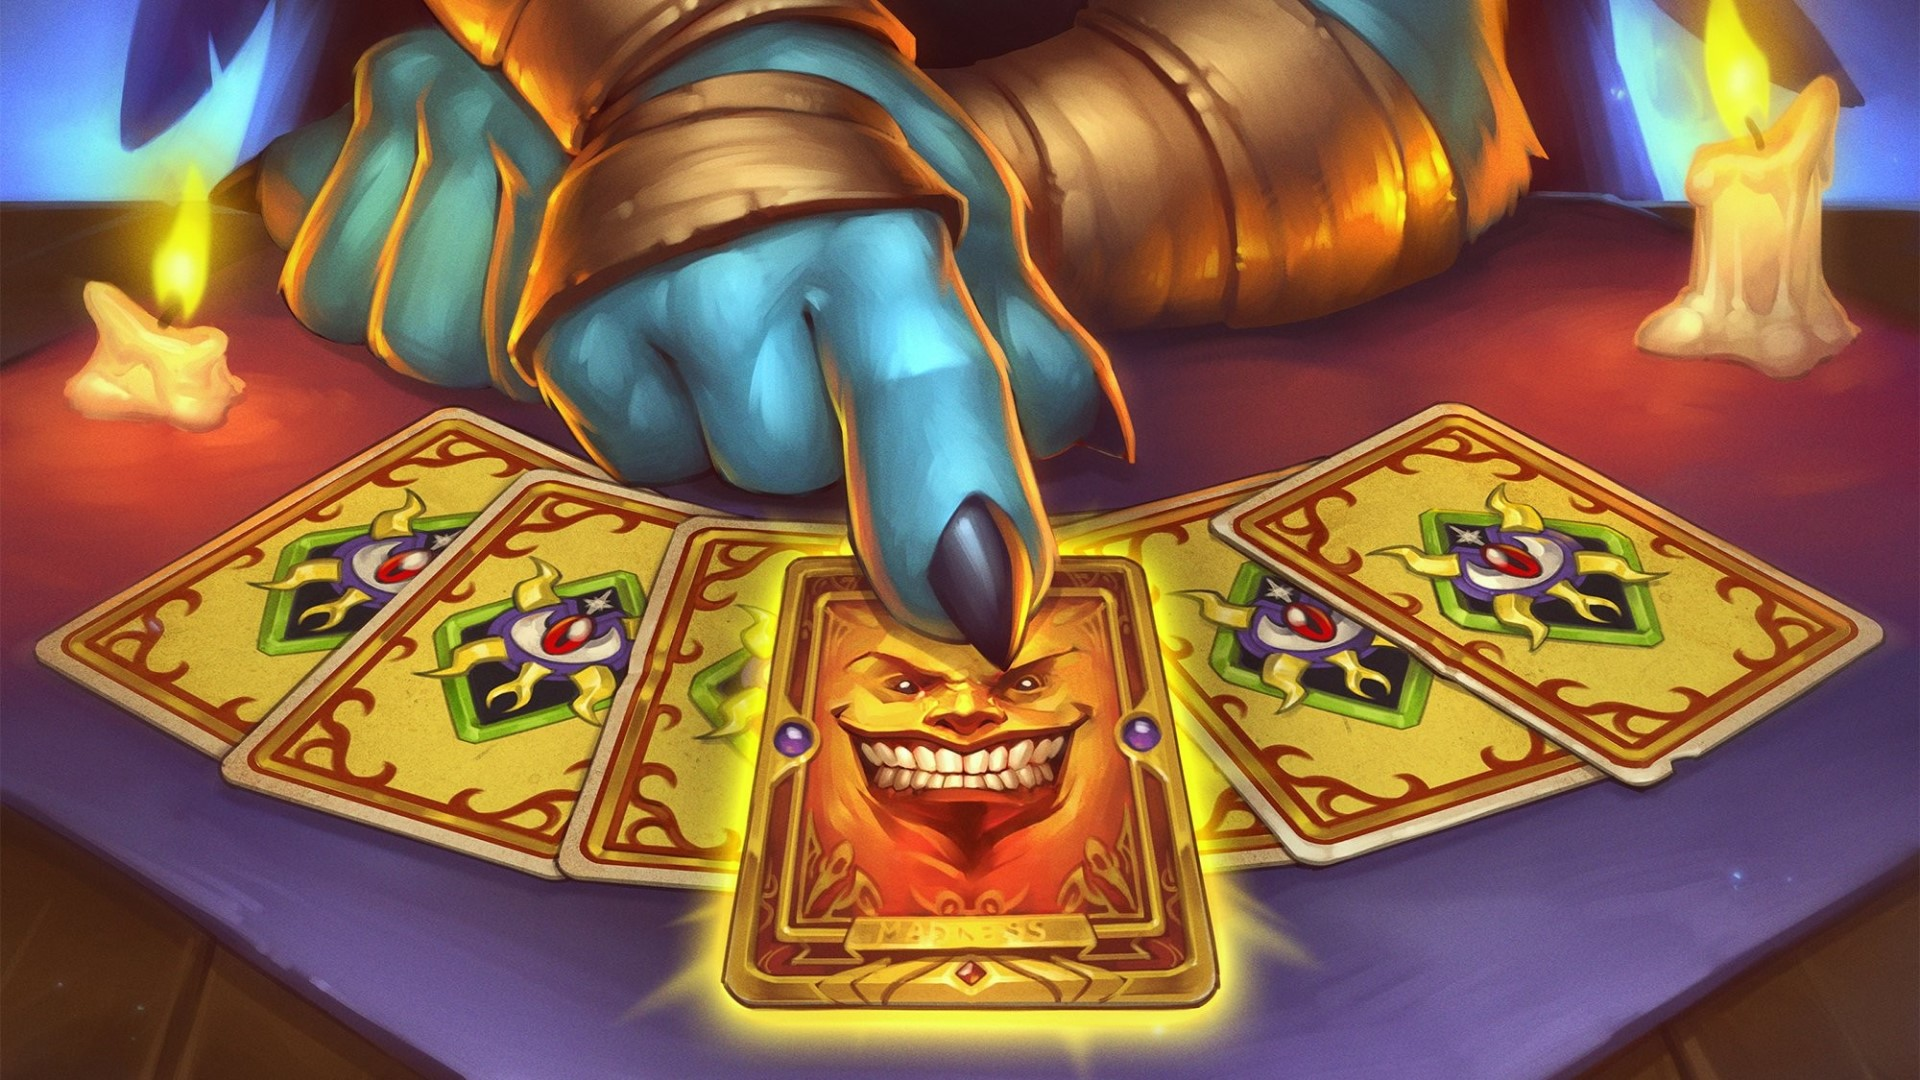 Hearthstone's latest balance patch brings merciful nerfs April 13